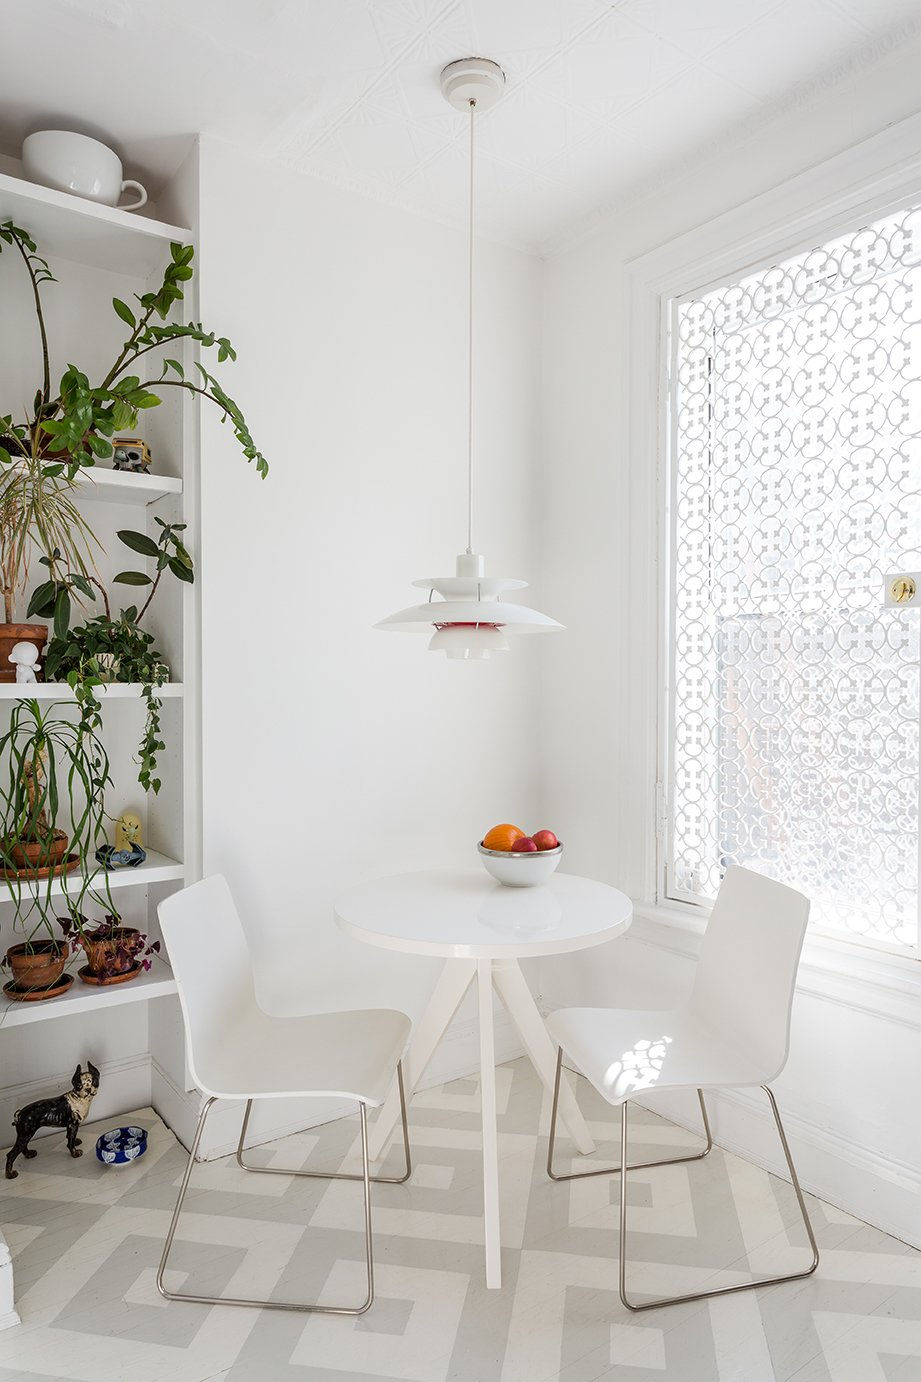 In the kitchen, a PH 50 pendant by Poul Henningsen for Louis Poulsen hangs overhead; the window is covered in a decorative cast-iron metal security grate from King Architectural Metals. The painted patterned floor is by Lillian Heard Studio. - Brooklyn, New York Dwell Magazine : July / August 2017 Tagged: Dining Room, Chair, Pendant Lighting, Table, and Painted Wood Floor.  Photo 8 of 13 in A Pair of Designers Renovate Their Brooklyn Brownstone With a Bright Monochromatic Palette